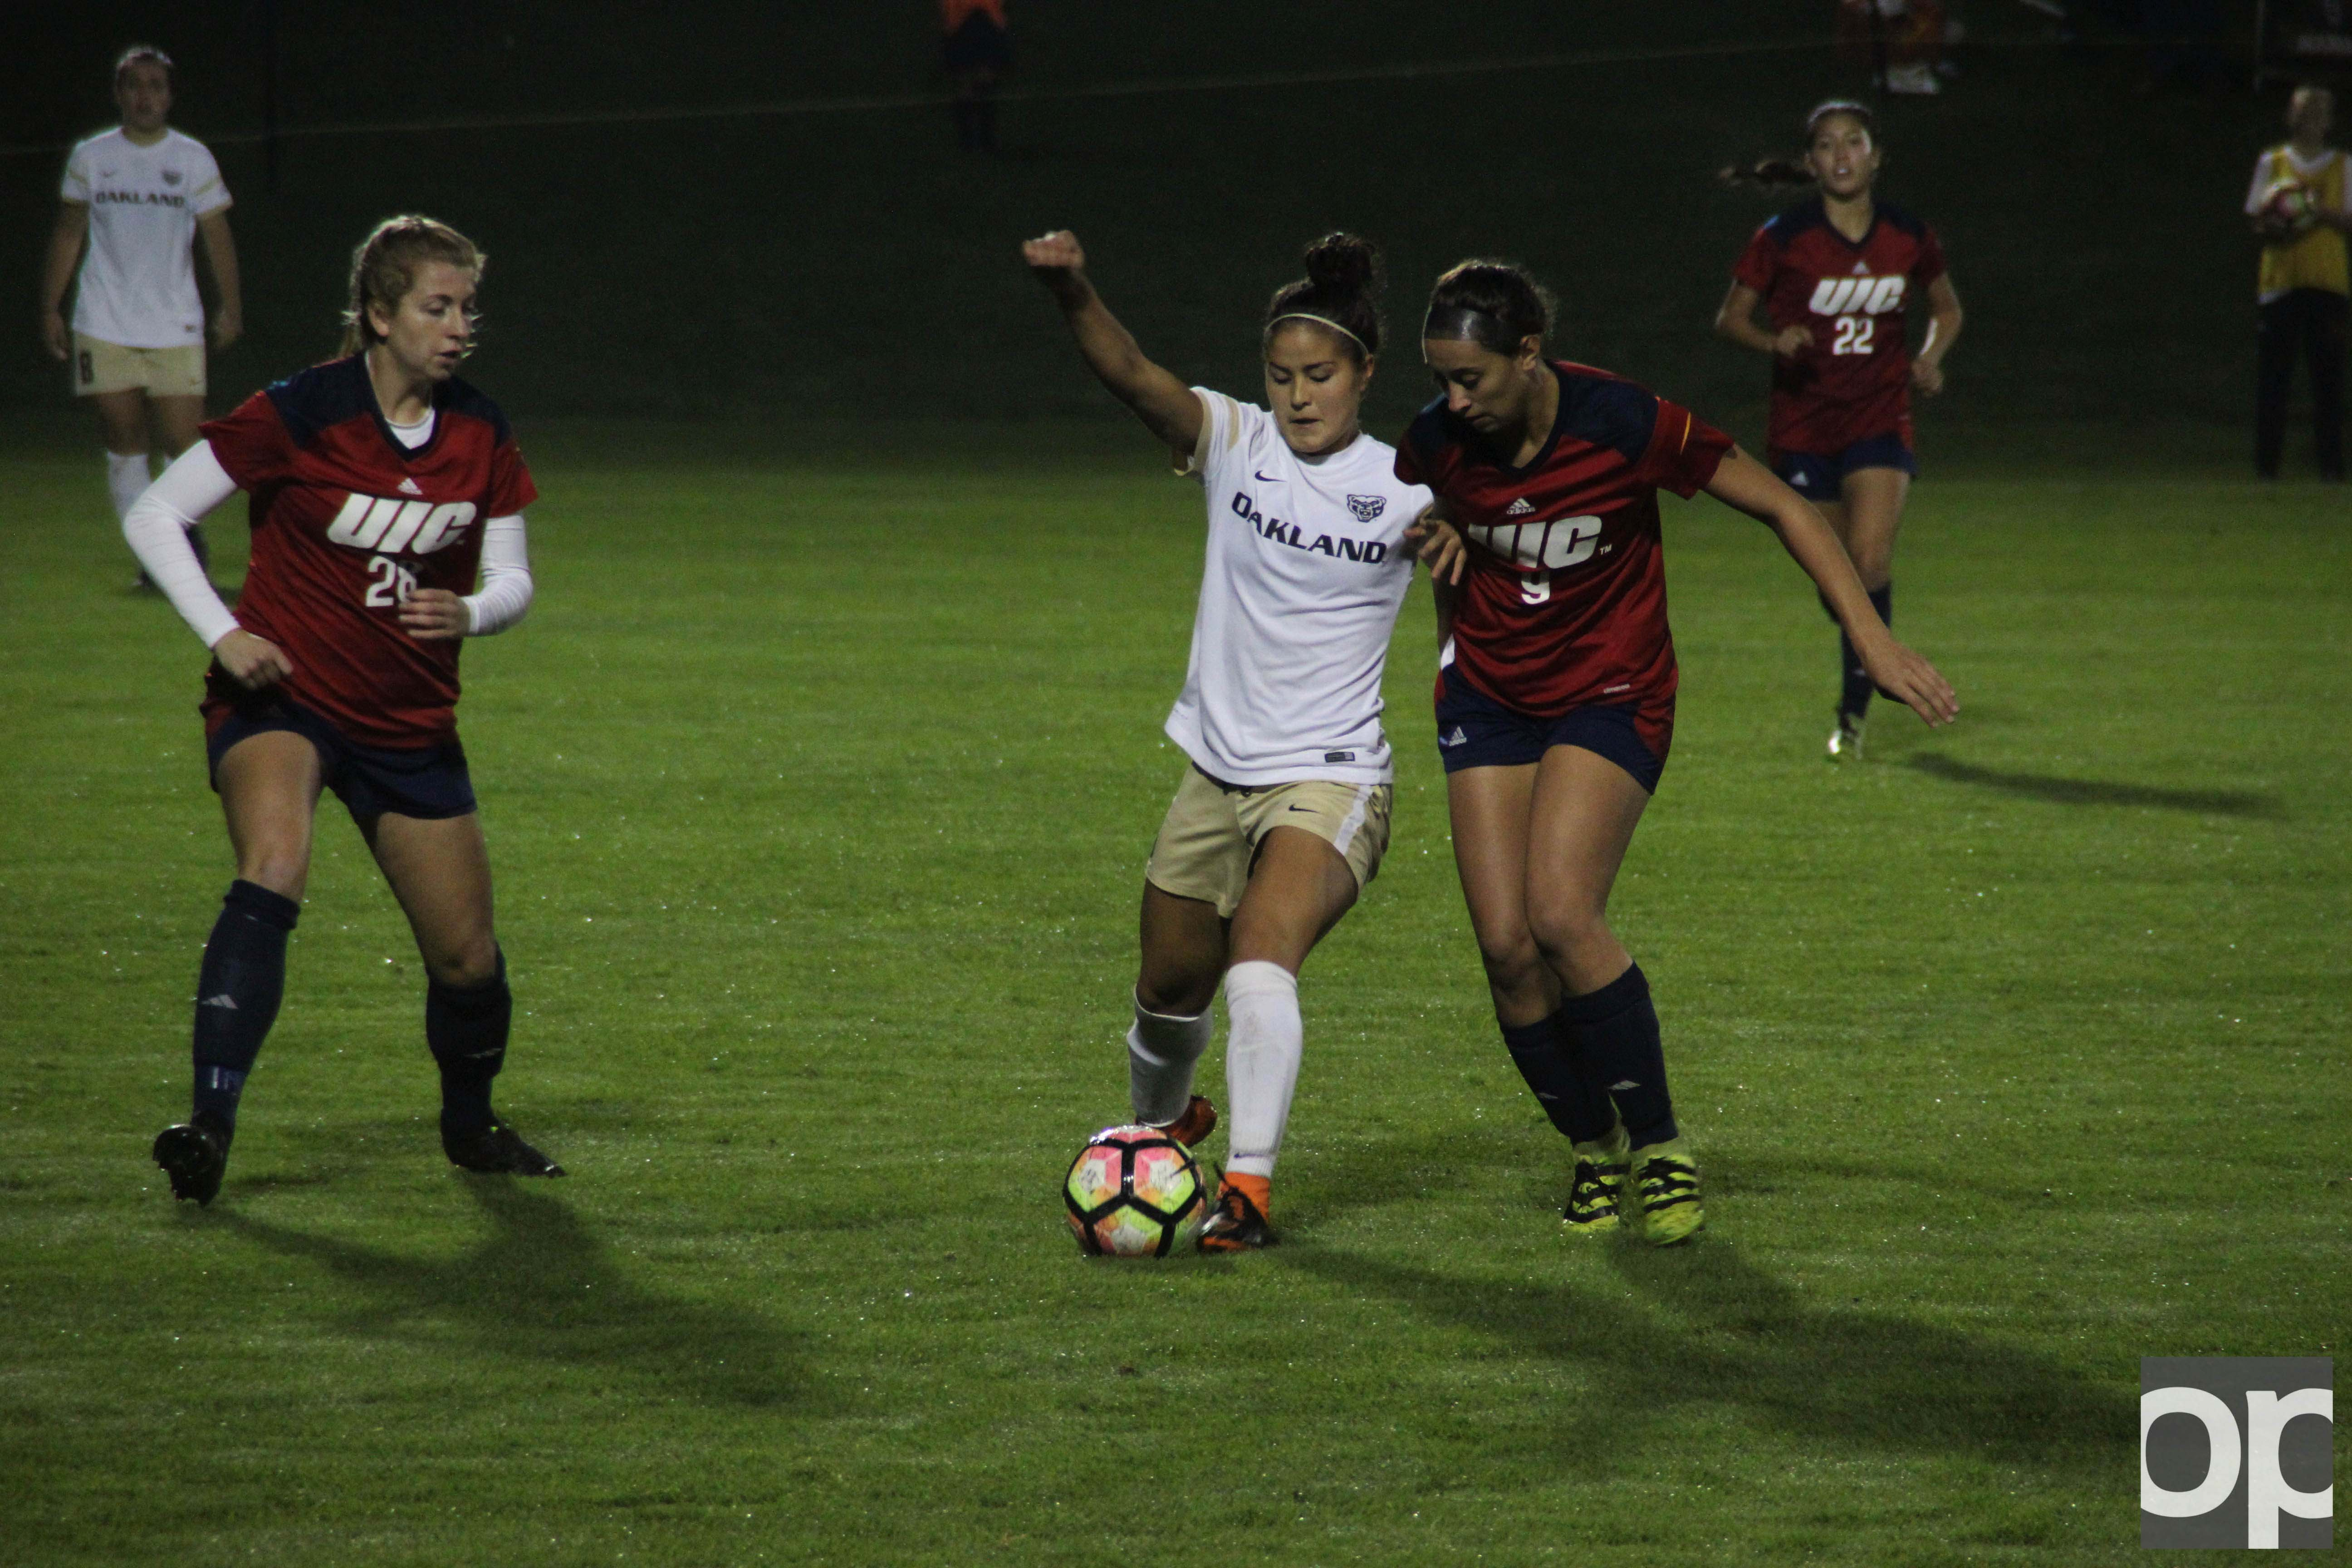 Brooke Miura (3) scored Oakland's lone goal Saturday night at the Oakland soccer field against UIC.